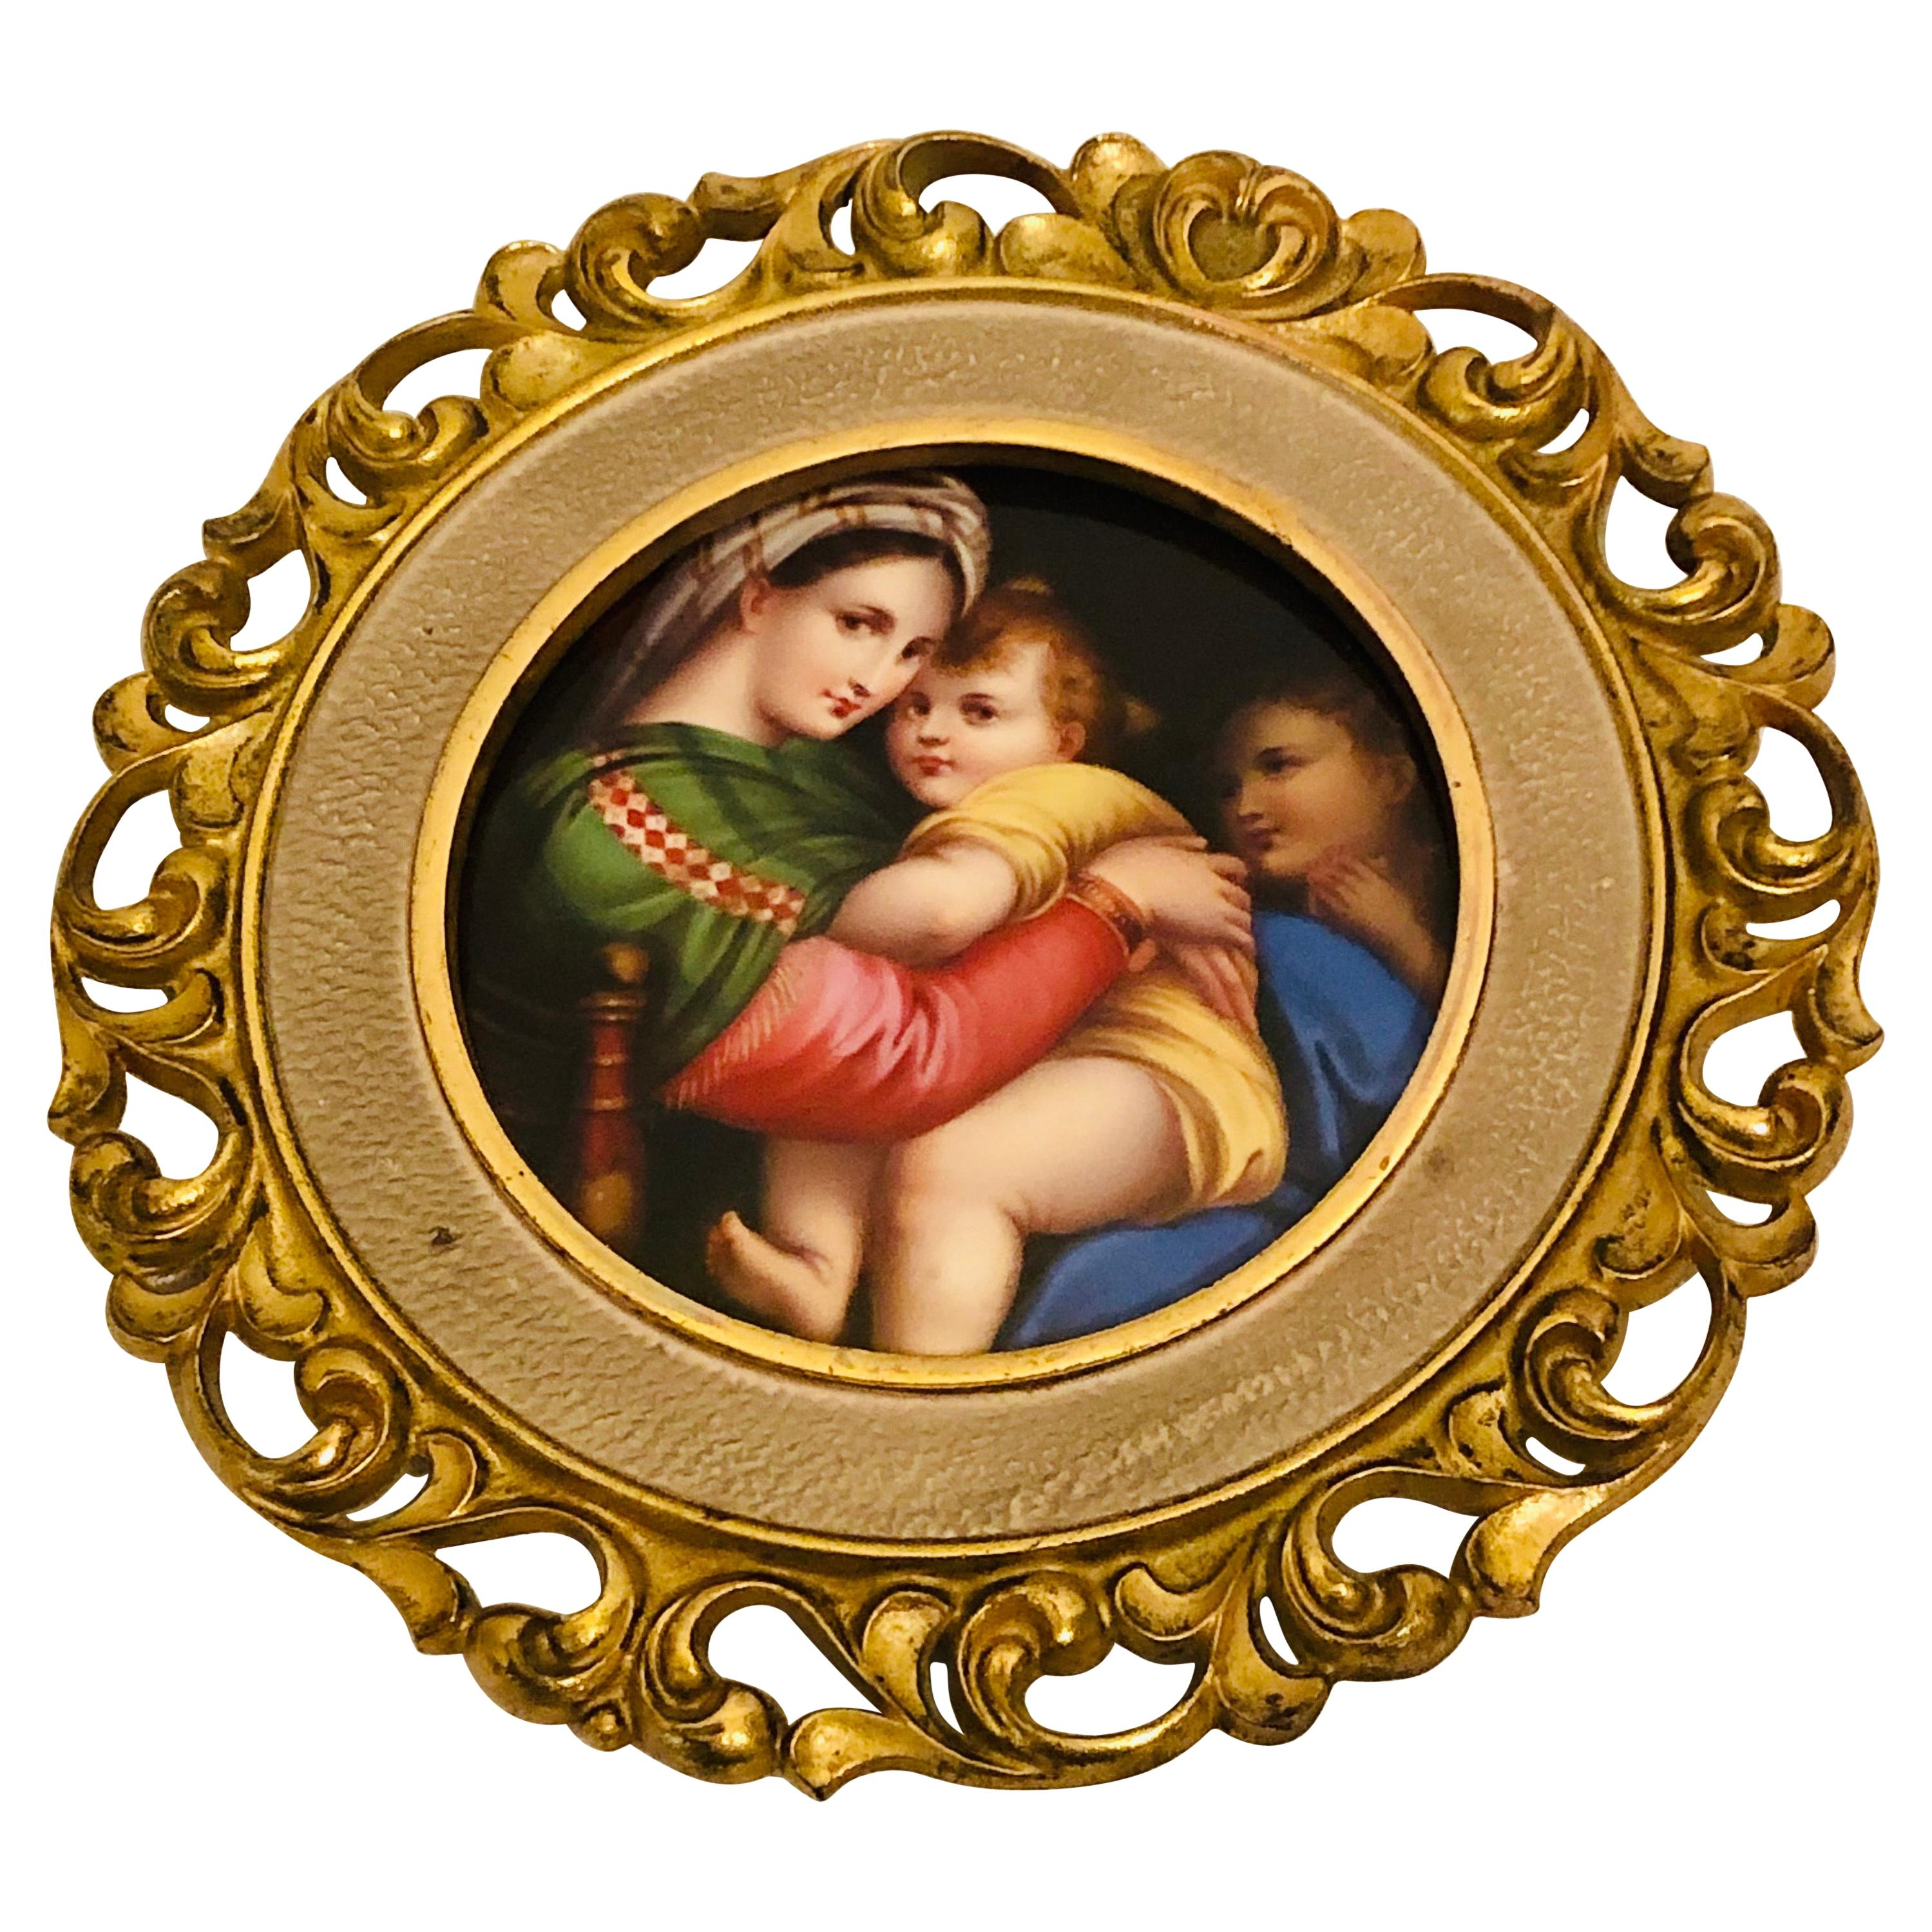 KPM Porcelain Plaque of Mary and Her Child after Madonna of the Chair Painting